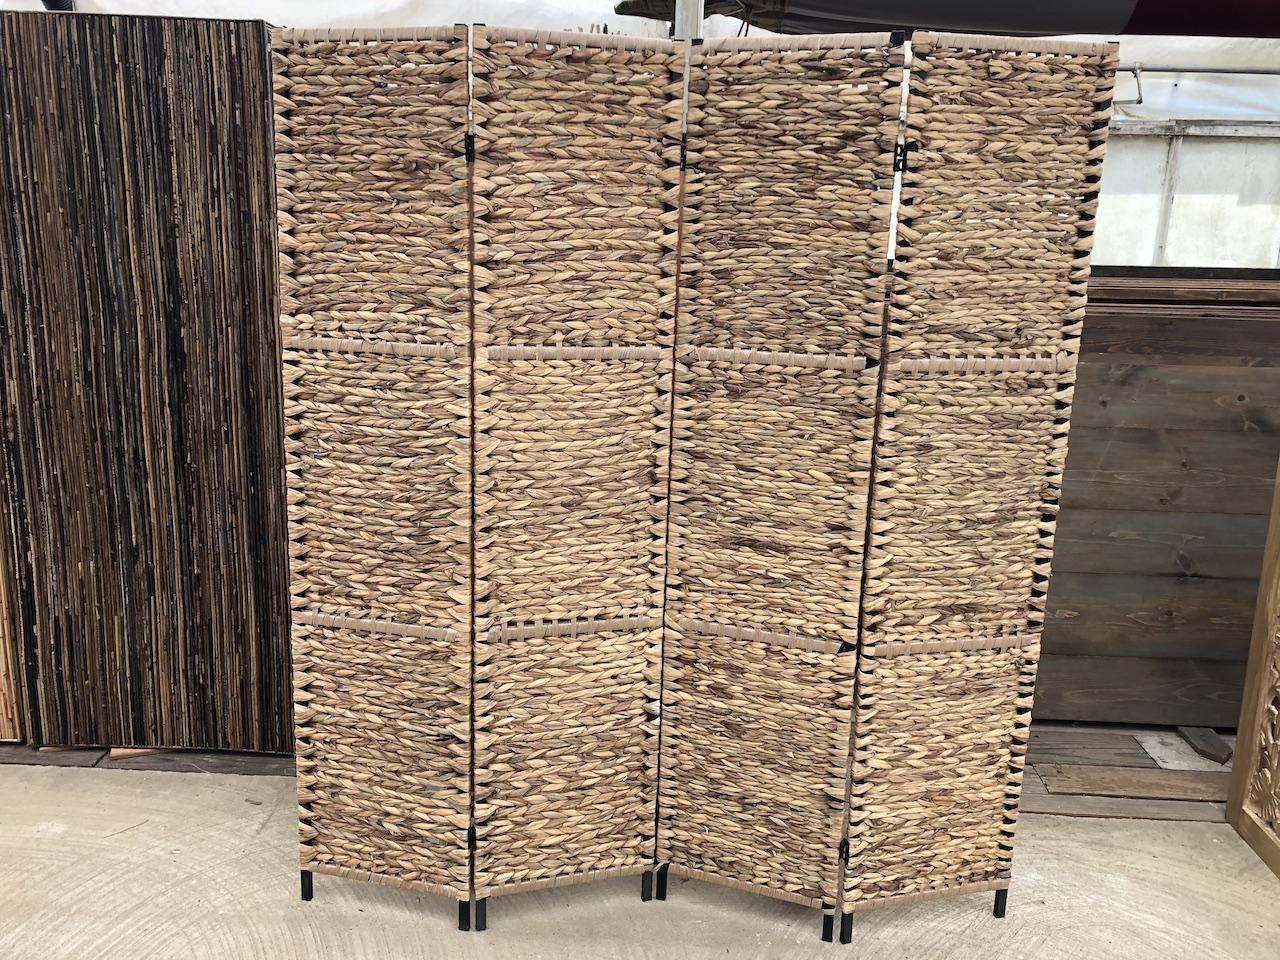 4 Panel Woven Divider